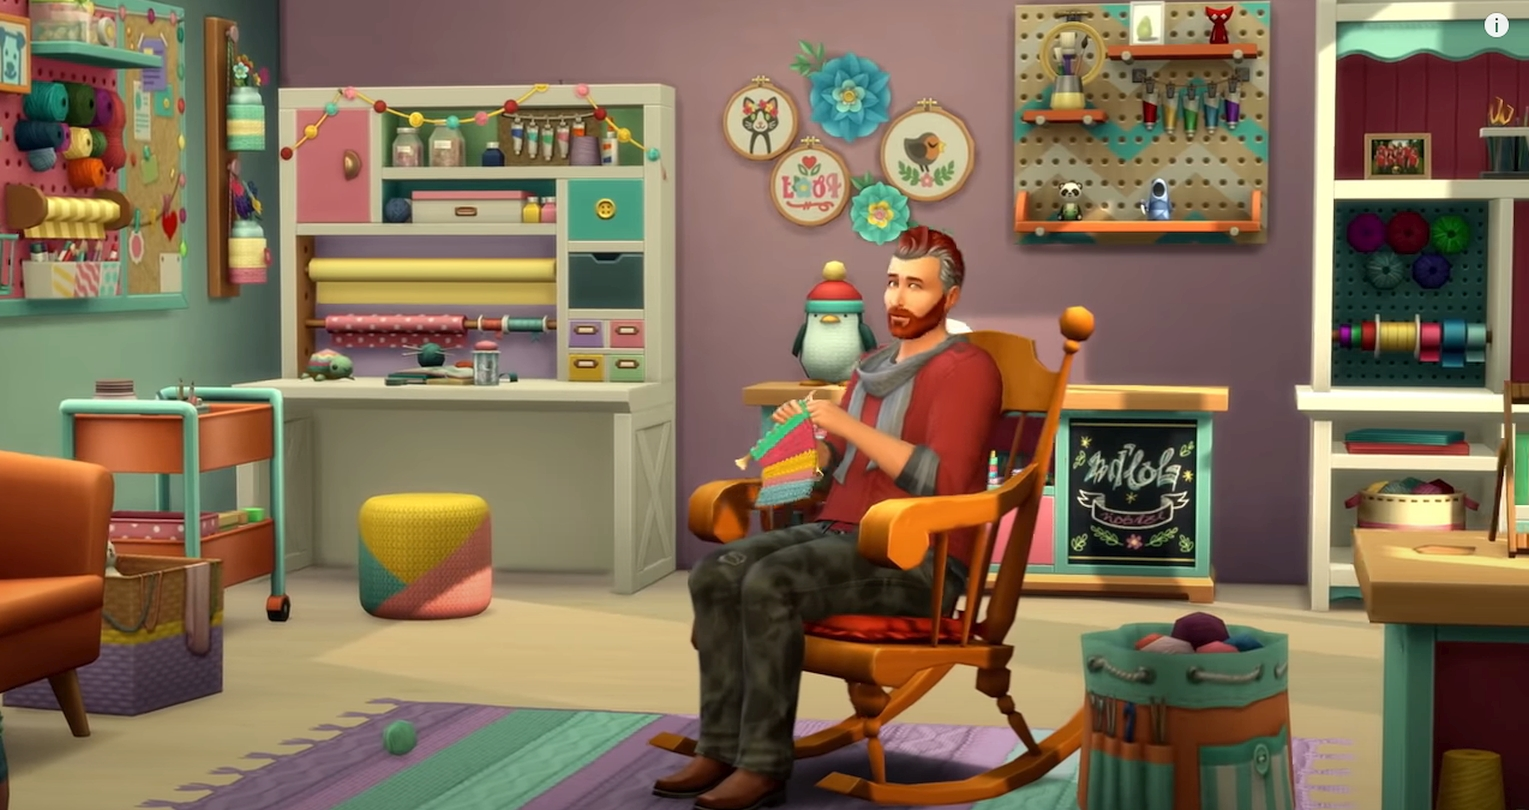 The Sims 4: Nifty Knitting Community Voted Stuff Pack Launches This Month For PC And Consoles